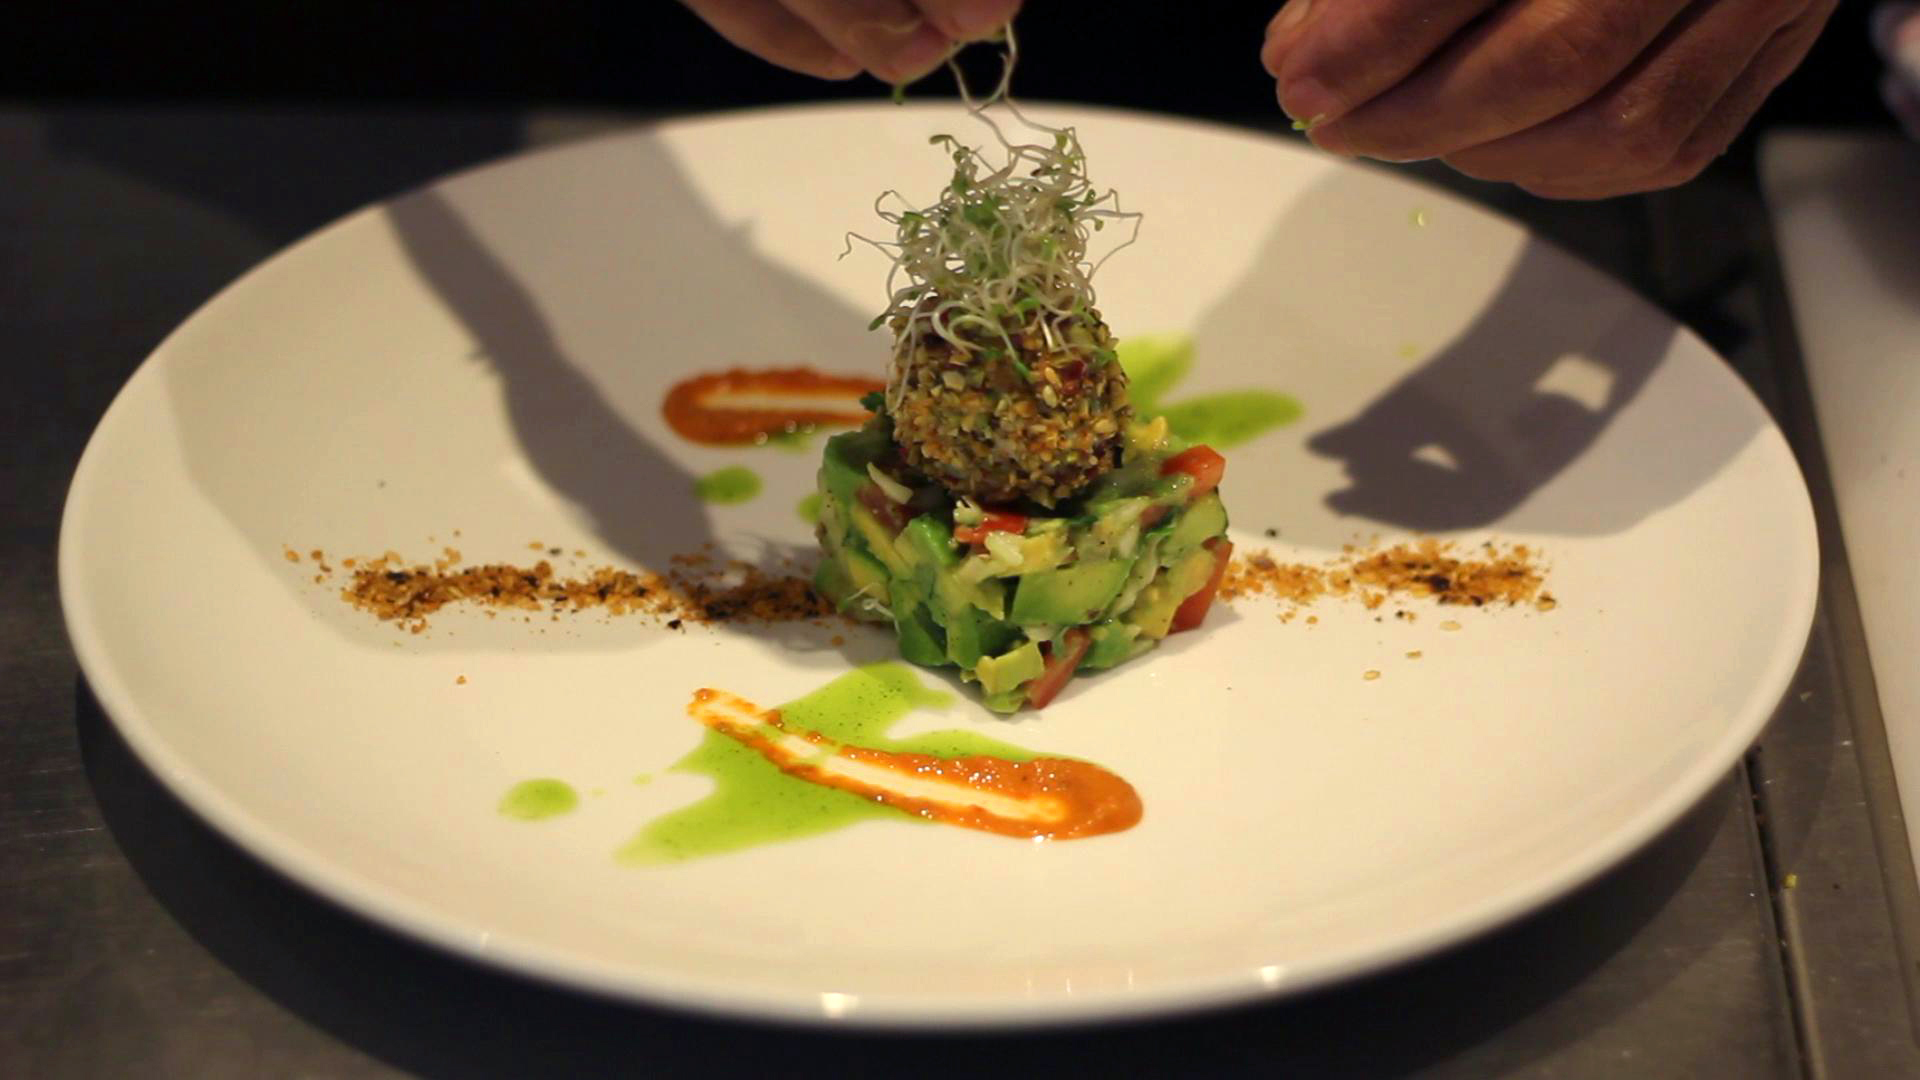 Raw Avocado and Cheese Appetizer from Fivelements Resort, Bali